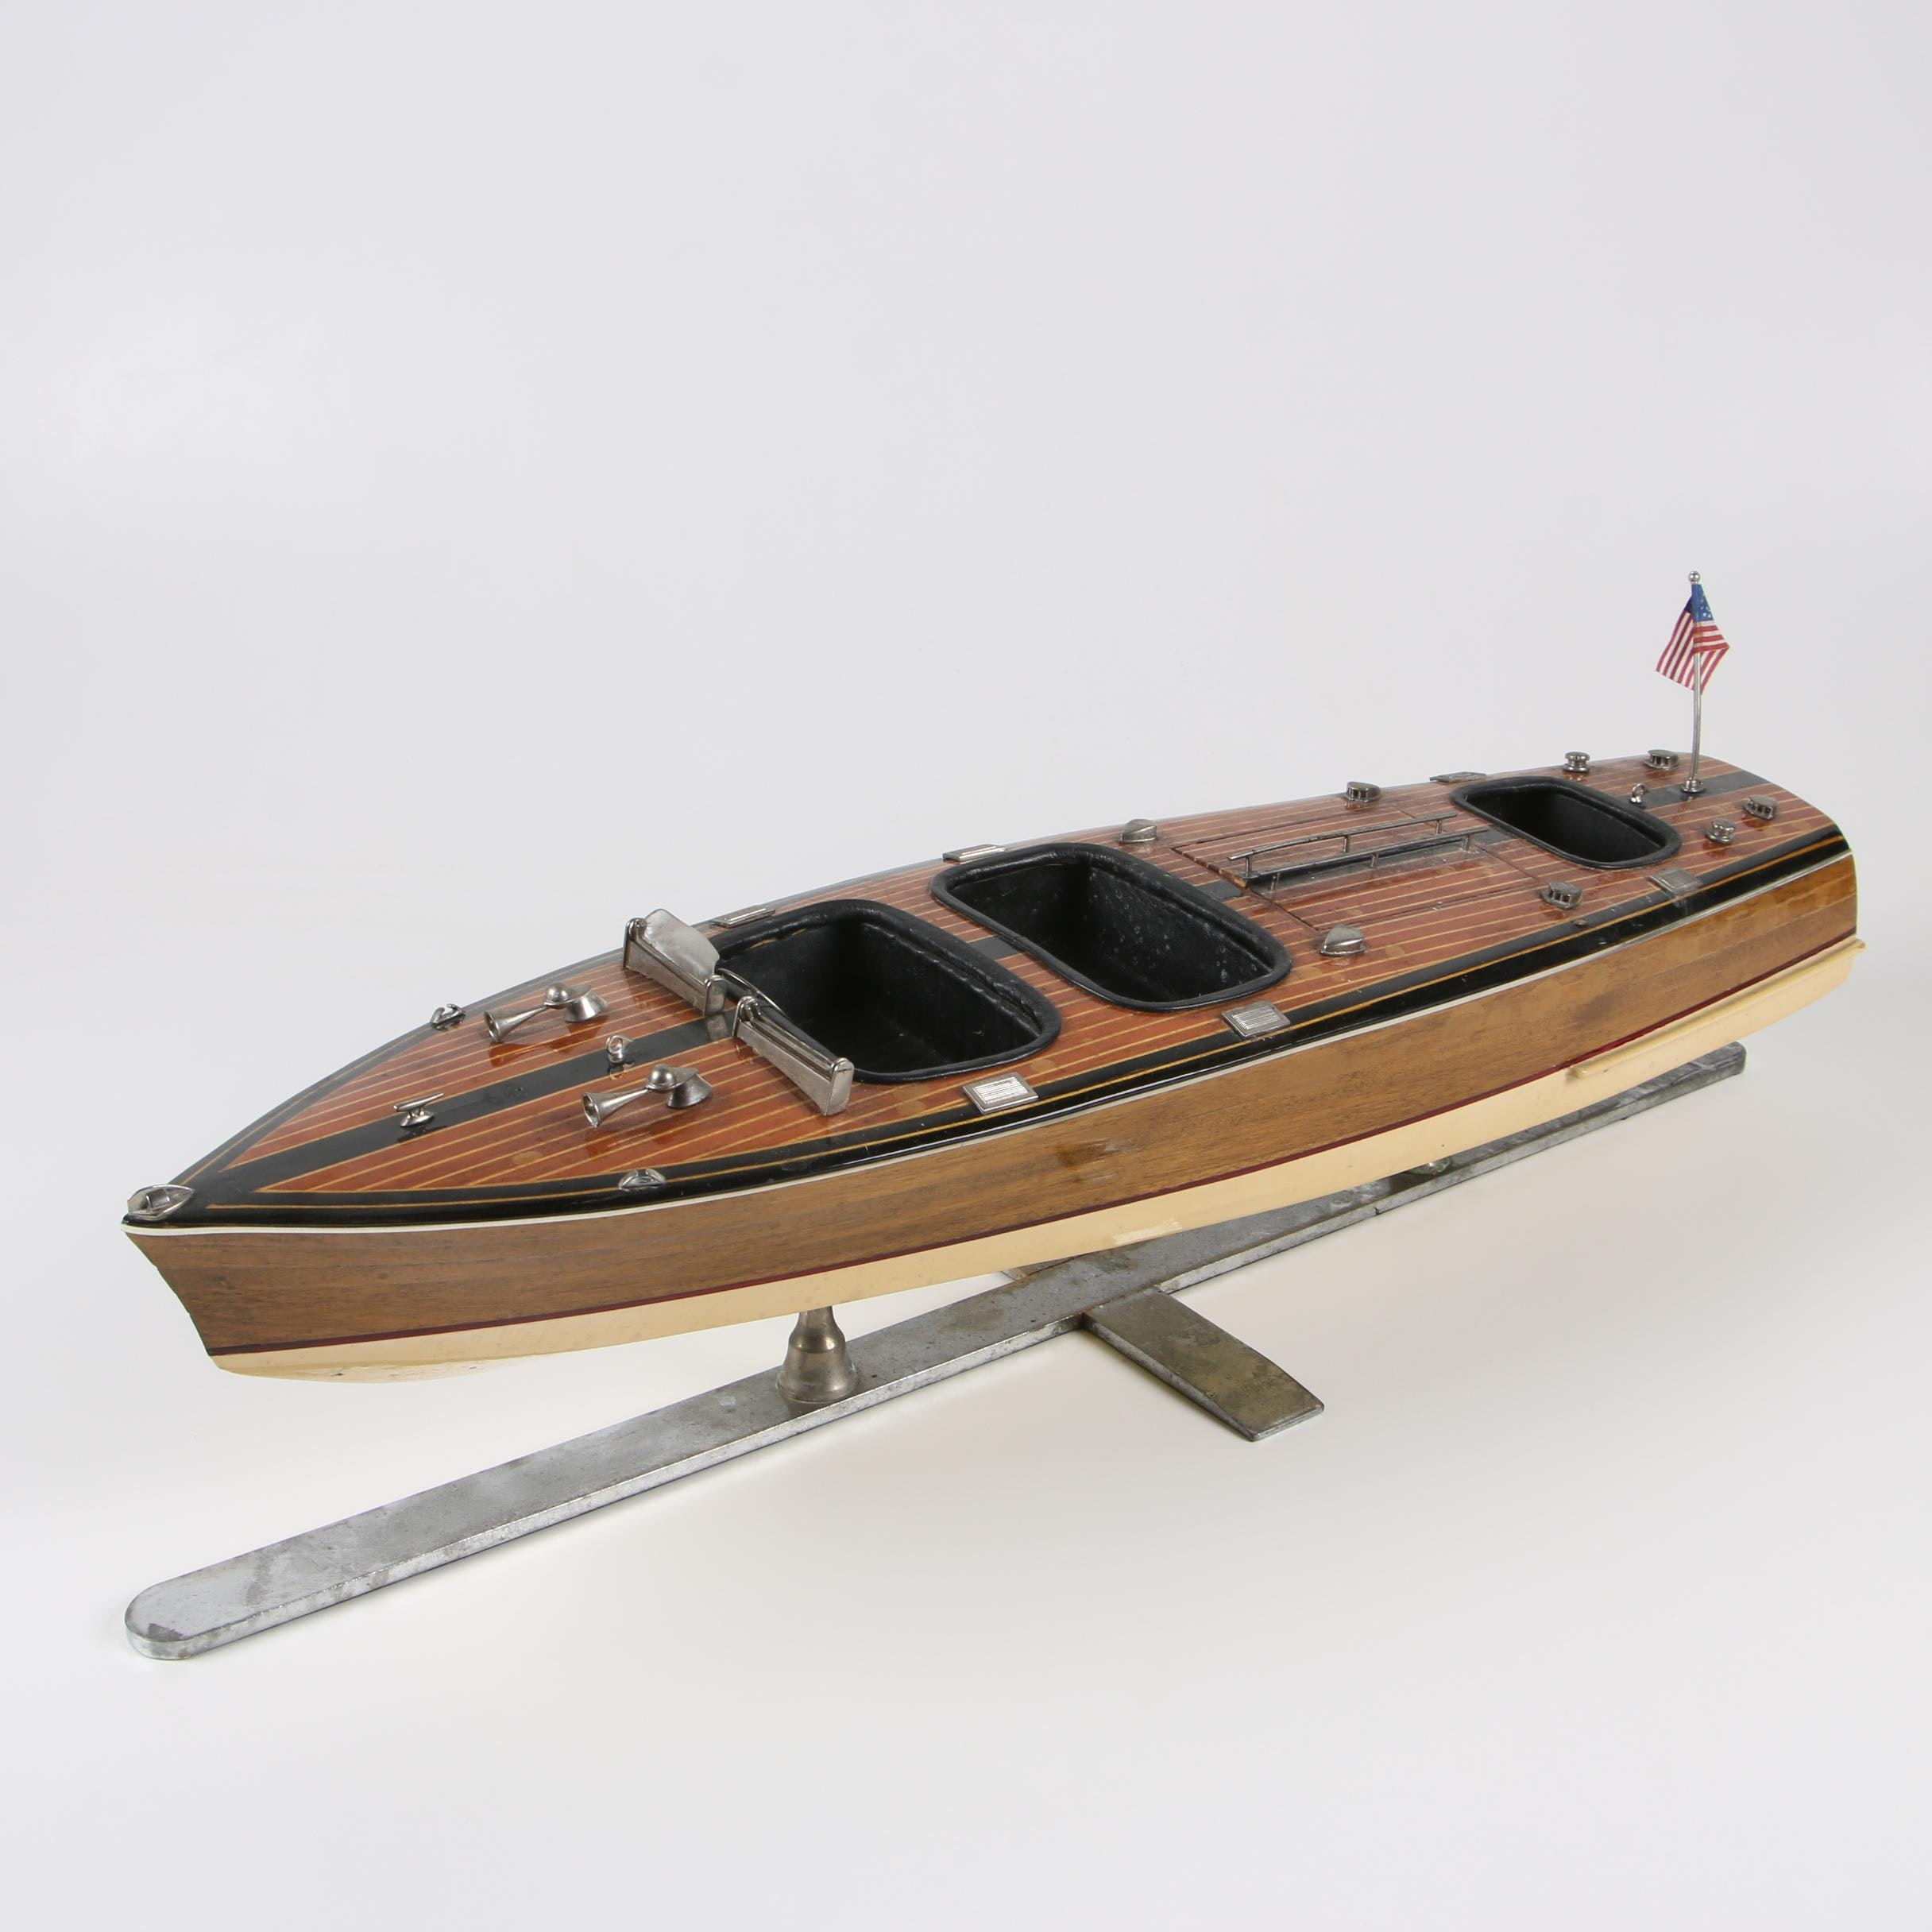 Decorative Mahogany Runabout Speed Boat Model by Authentic Models